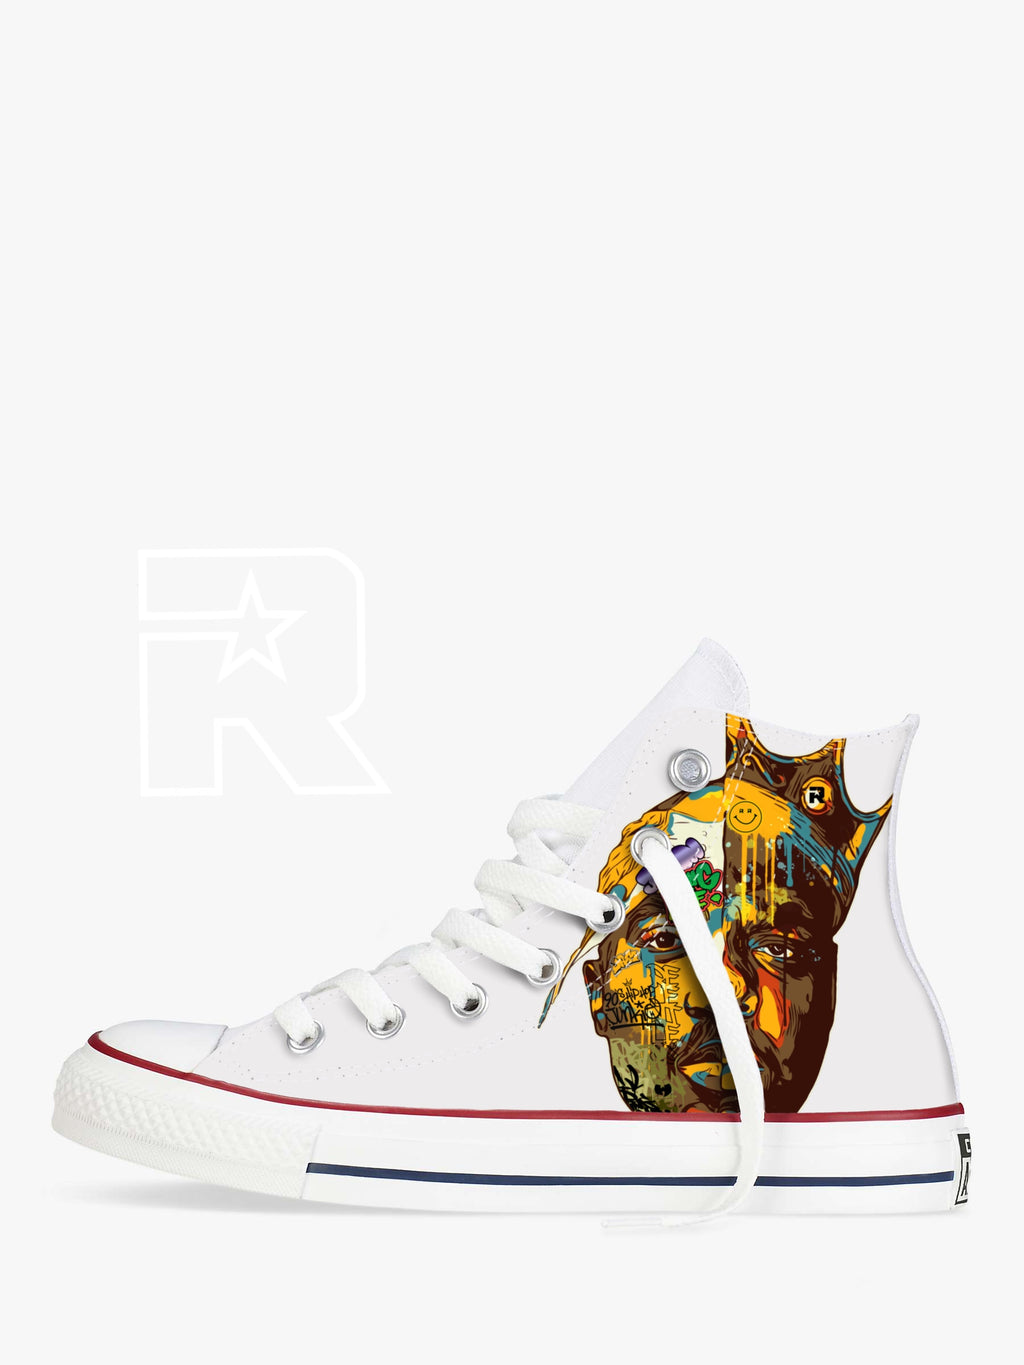 Two Kings High Top Converse